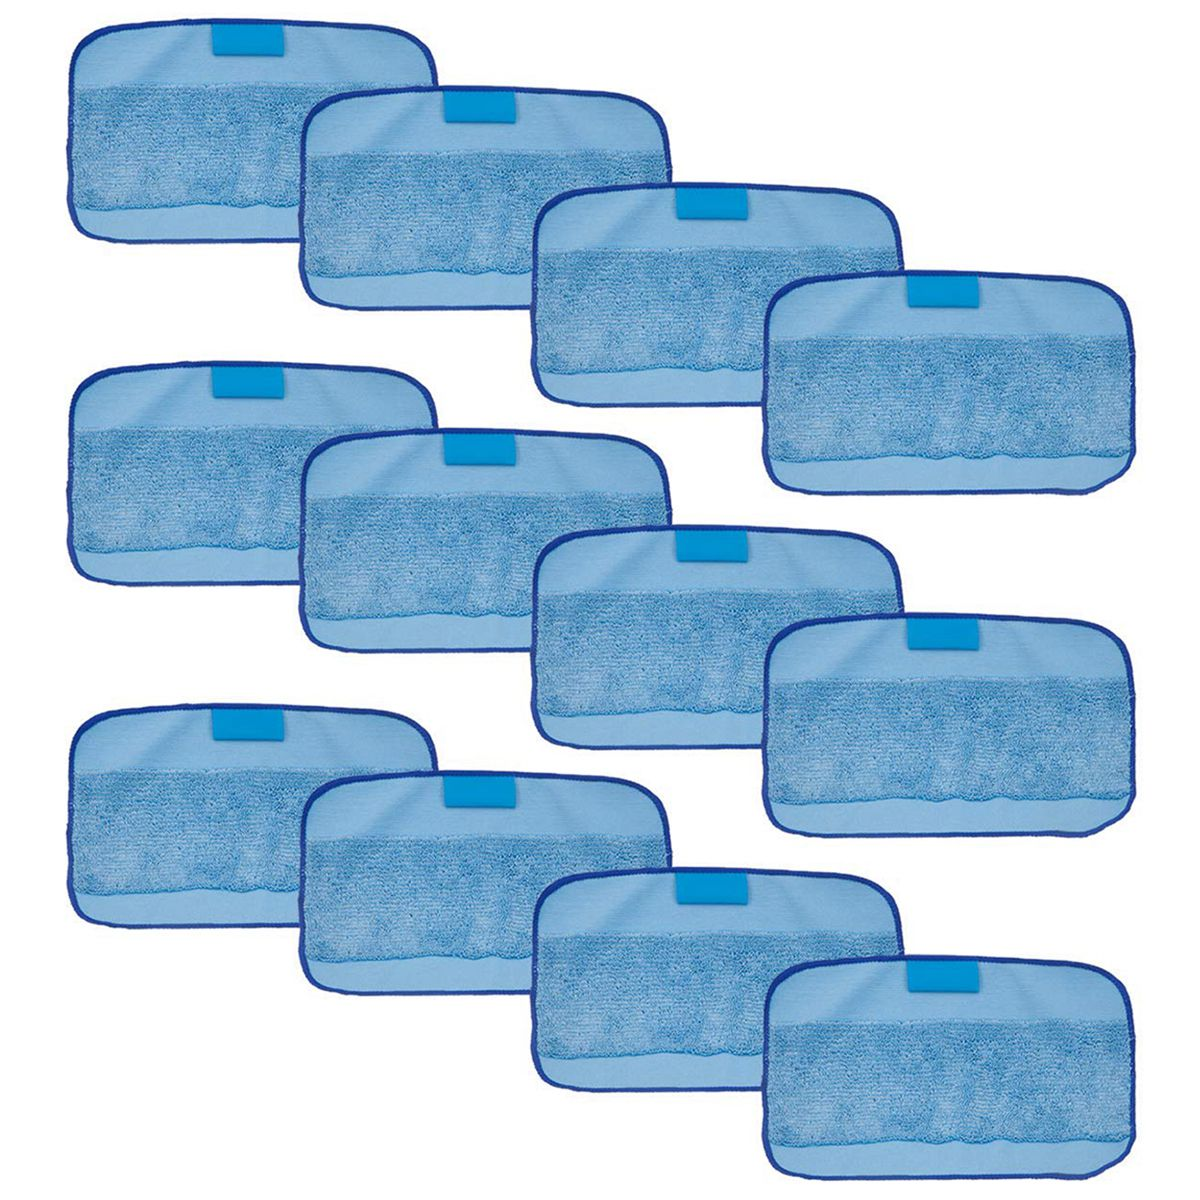 12-Packs Wet Cloths for Braava , Replacement Washable Pro Mopping Cloths for iRobot Braava 380t 320 Mint 4200 5200 microfiber 8pcs wet and 2pcs dry dweeping pro clean mopping cloths for robot irobot braava minit 4200 5200 5200c 380 380t